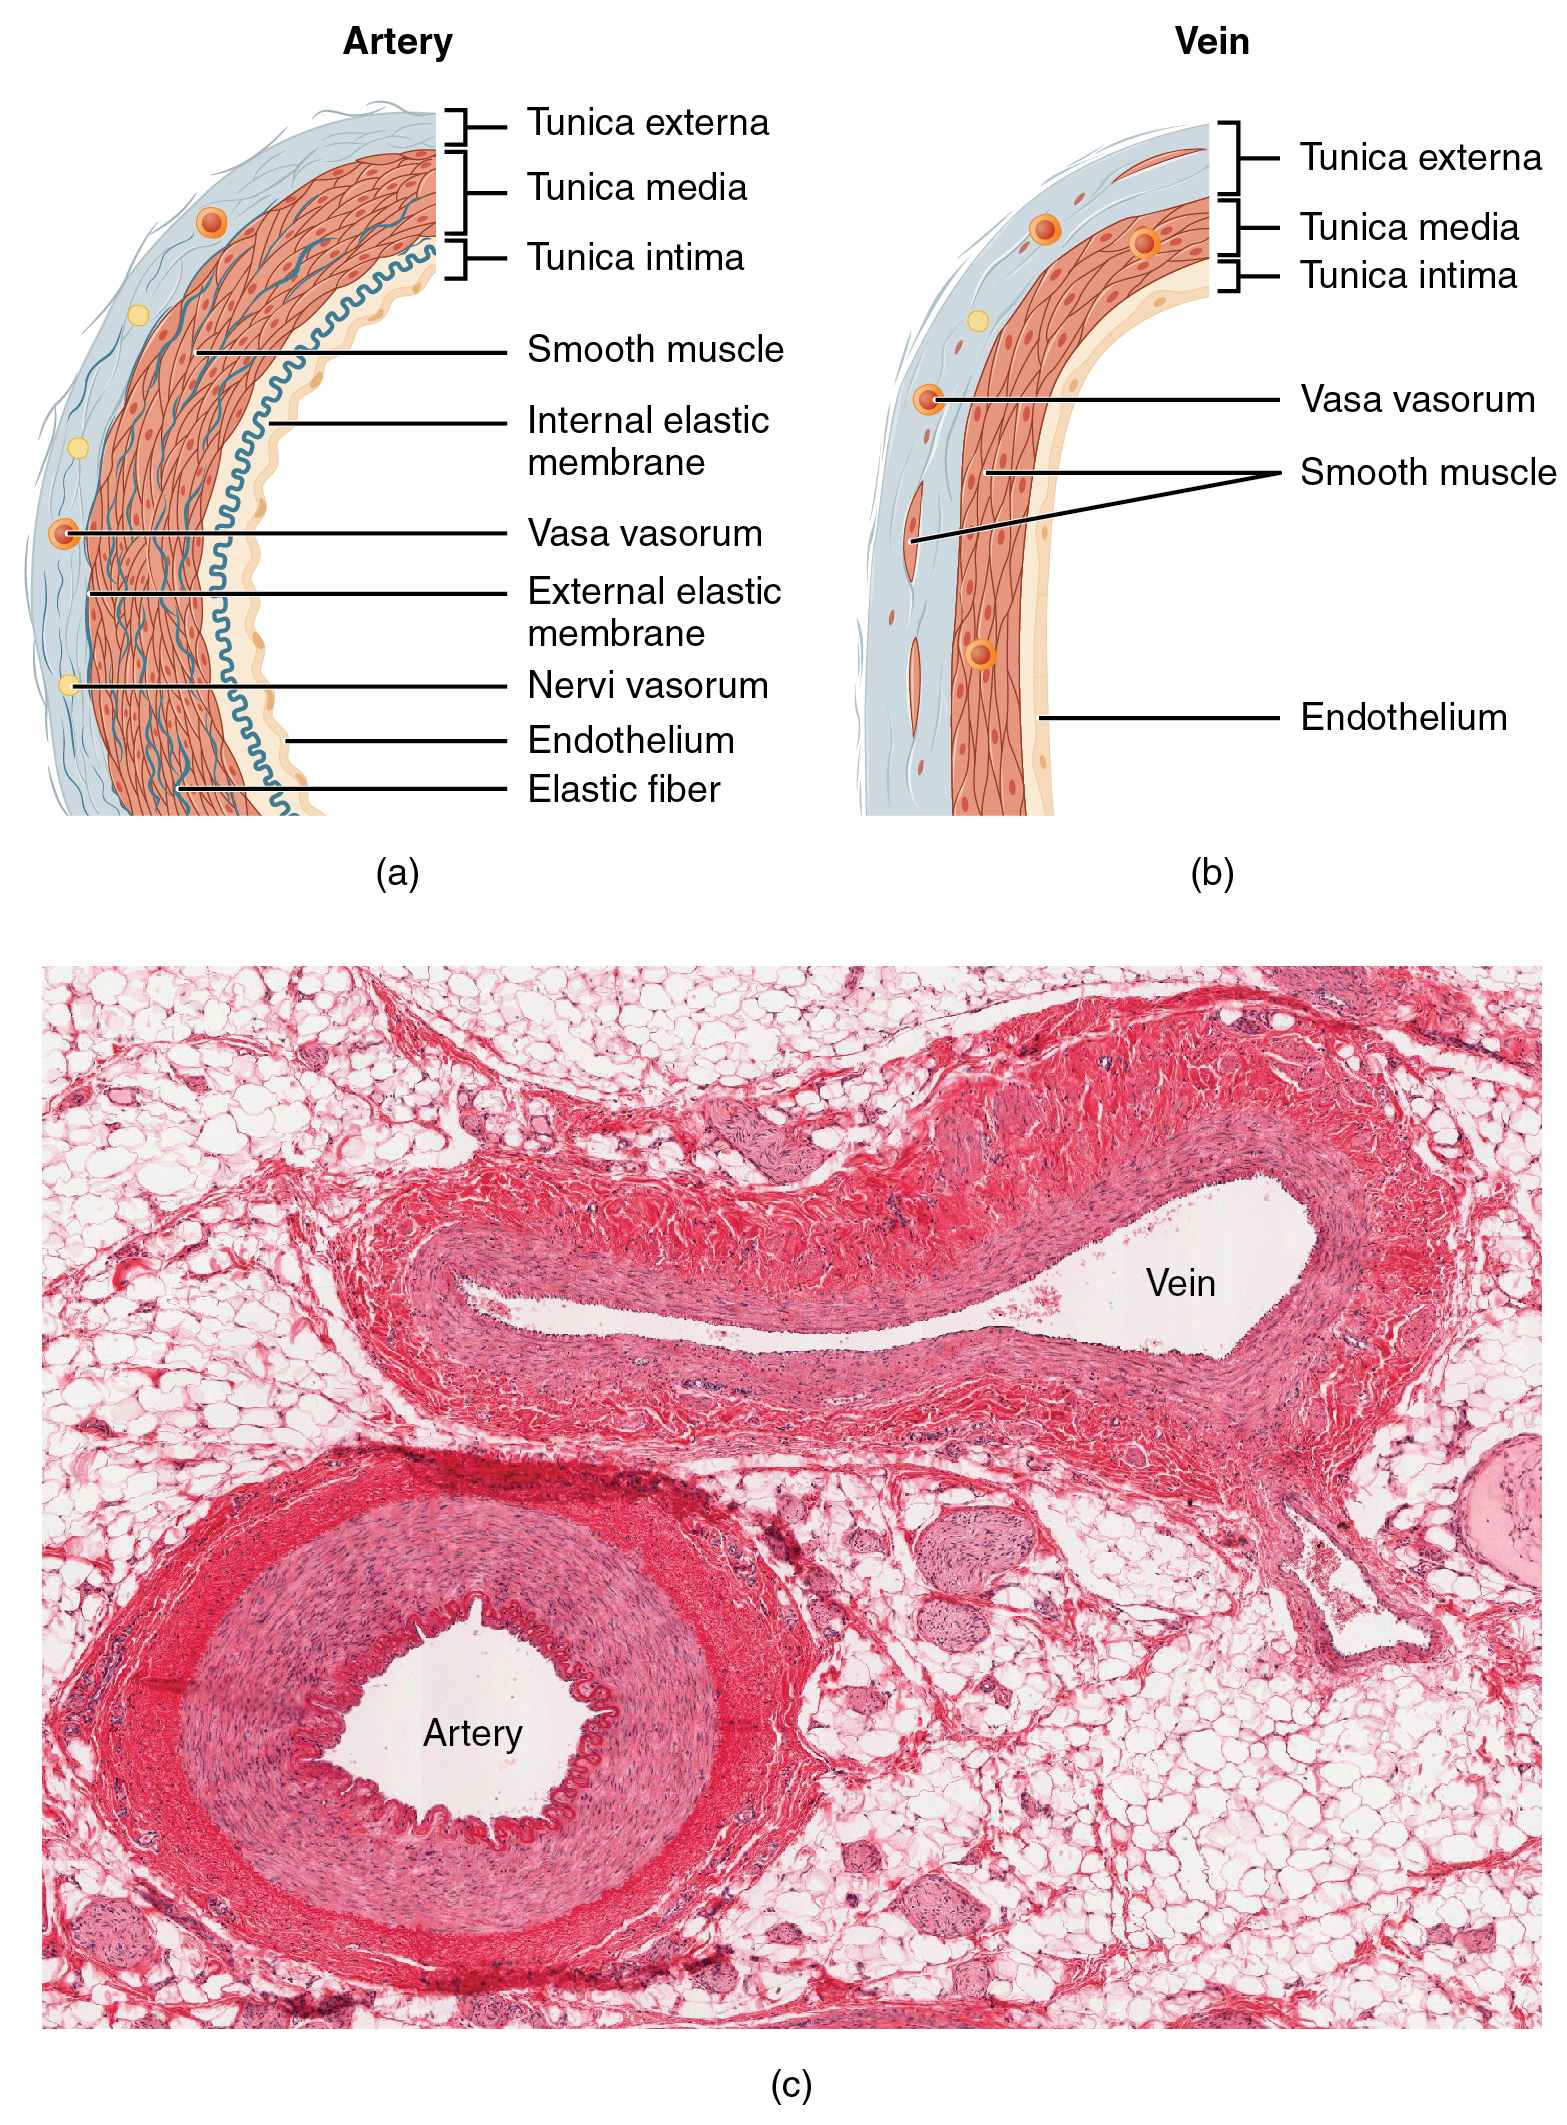 The top left panel of this figure shows the ultrastructure of an artery, and the top right panel shows the ultrastructure of a vein. The bottom panel shows a micrograph with the cross sections of an artery and a vein.